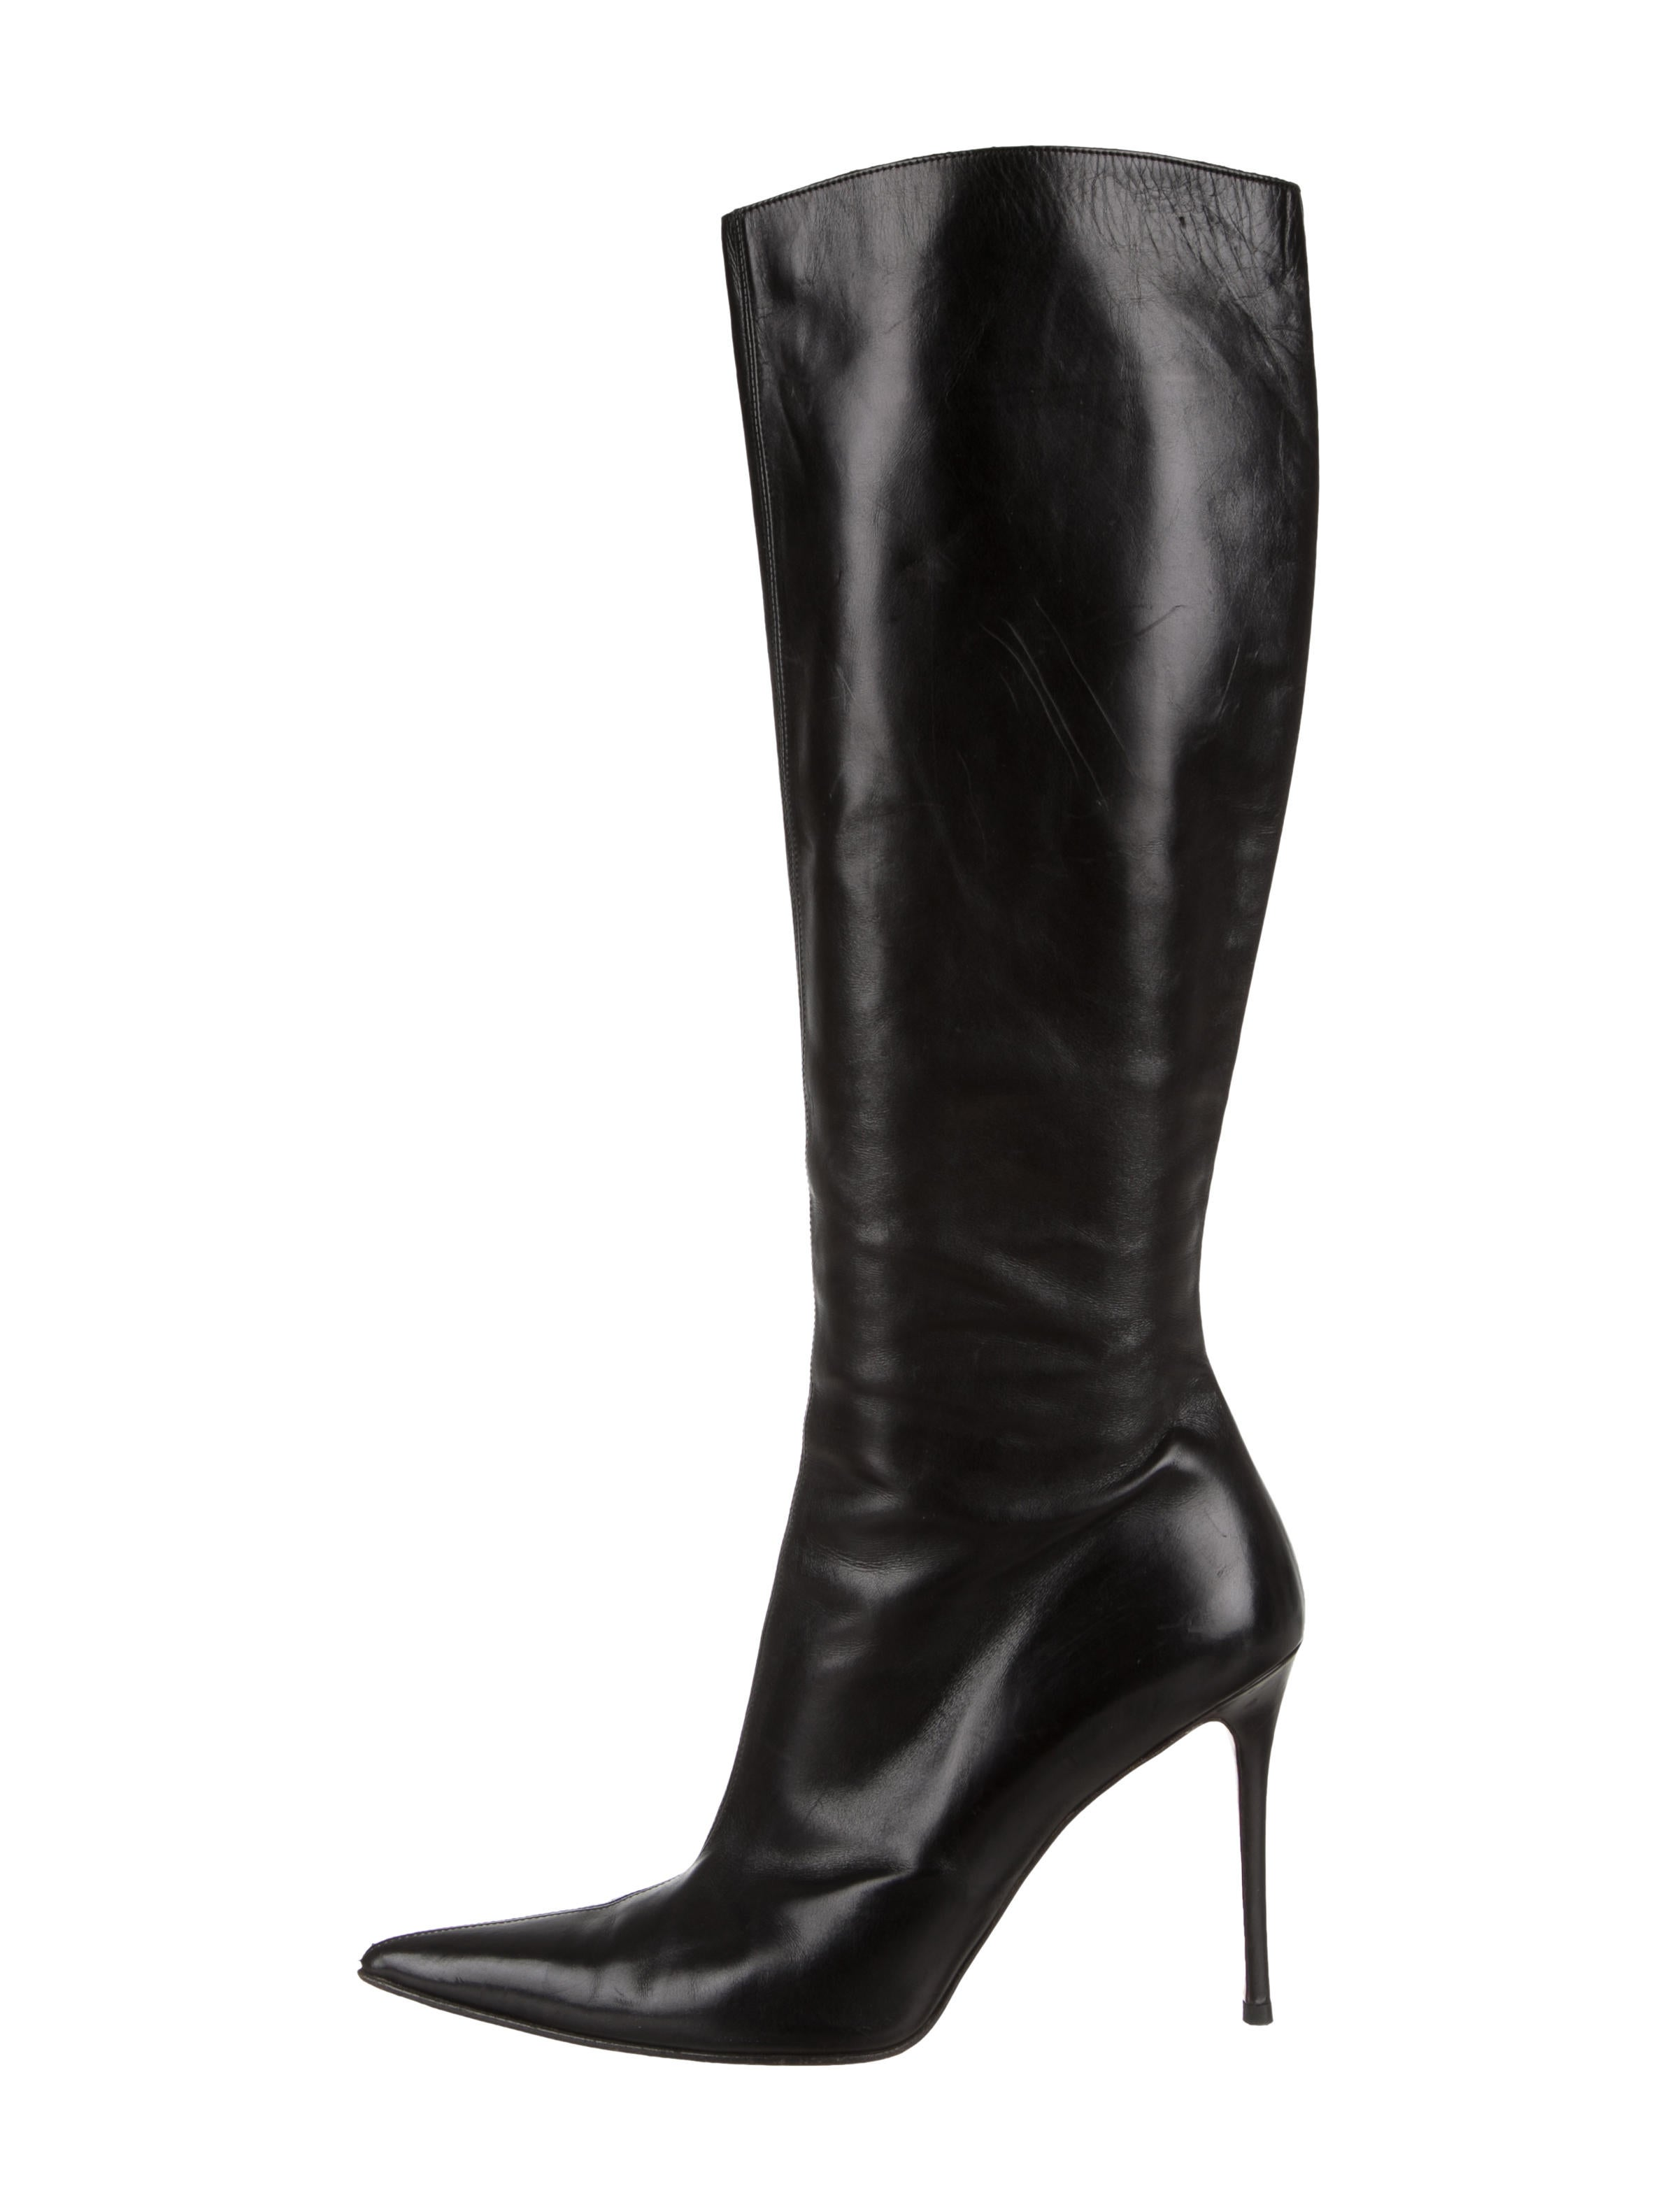 dcc5f11ad61 Christian Louboutin Leather Pointed-Toe Boots - Shoes - CHT109618 ...